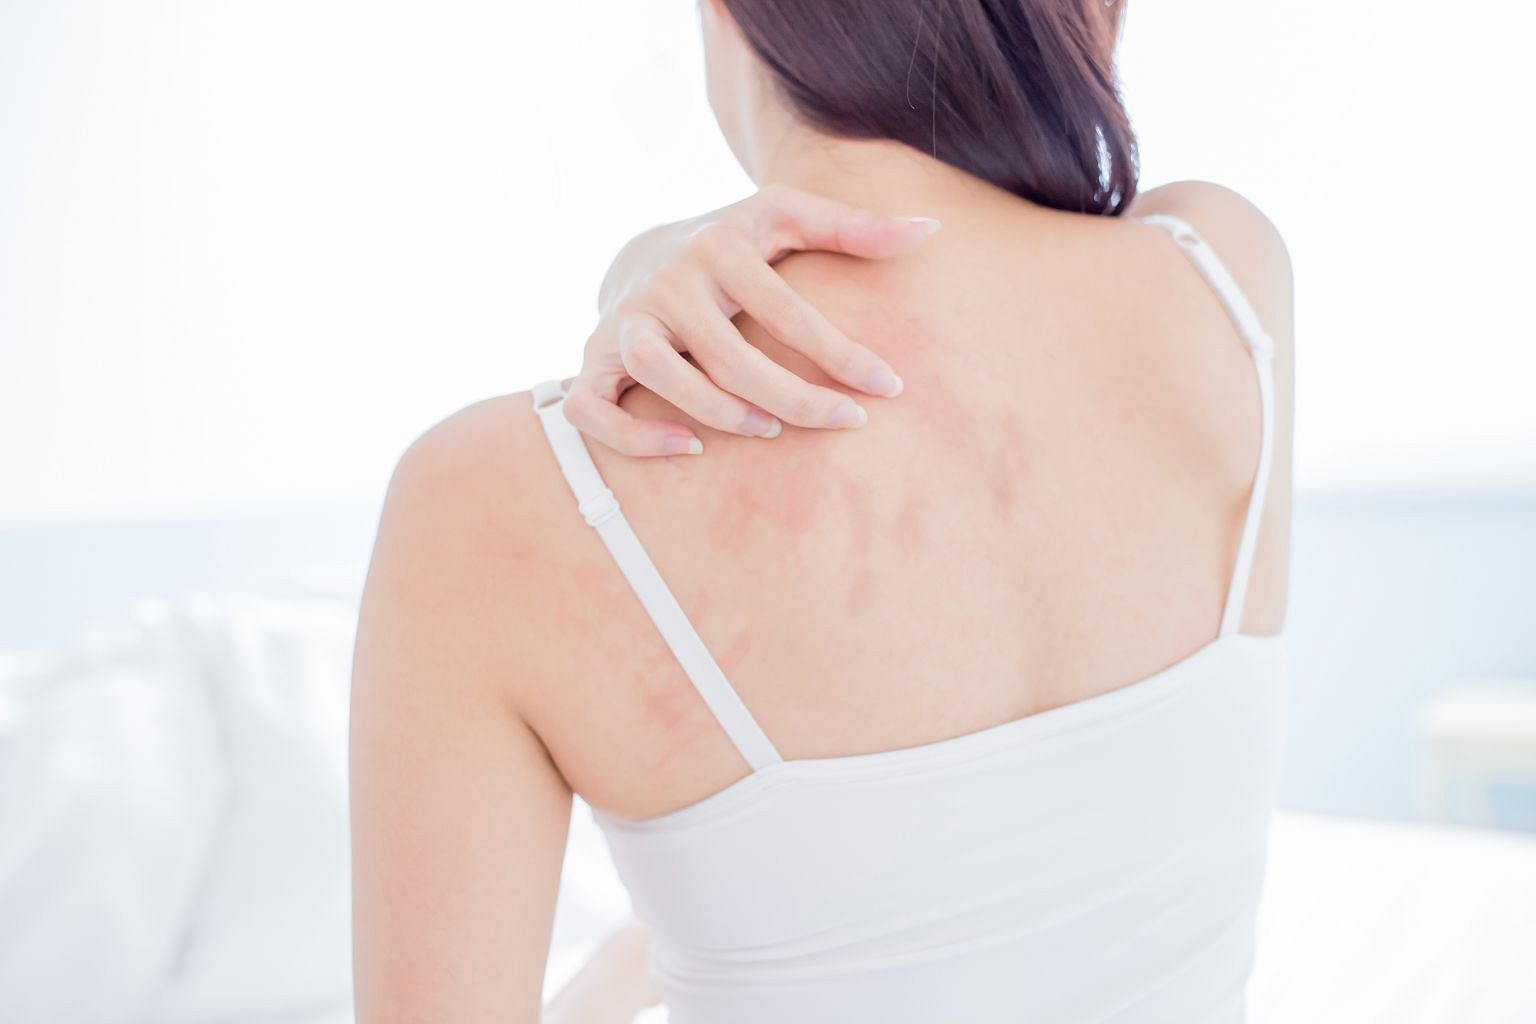 Biologic drug Dupilumab, which is given by injection, reduces inflammation, soothing skin redness, itch and rash associated with eczema.